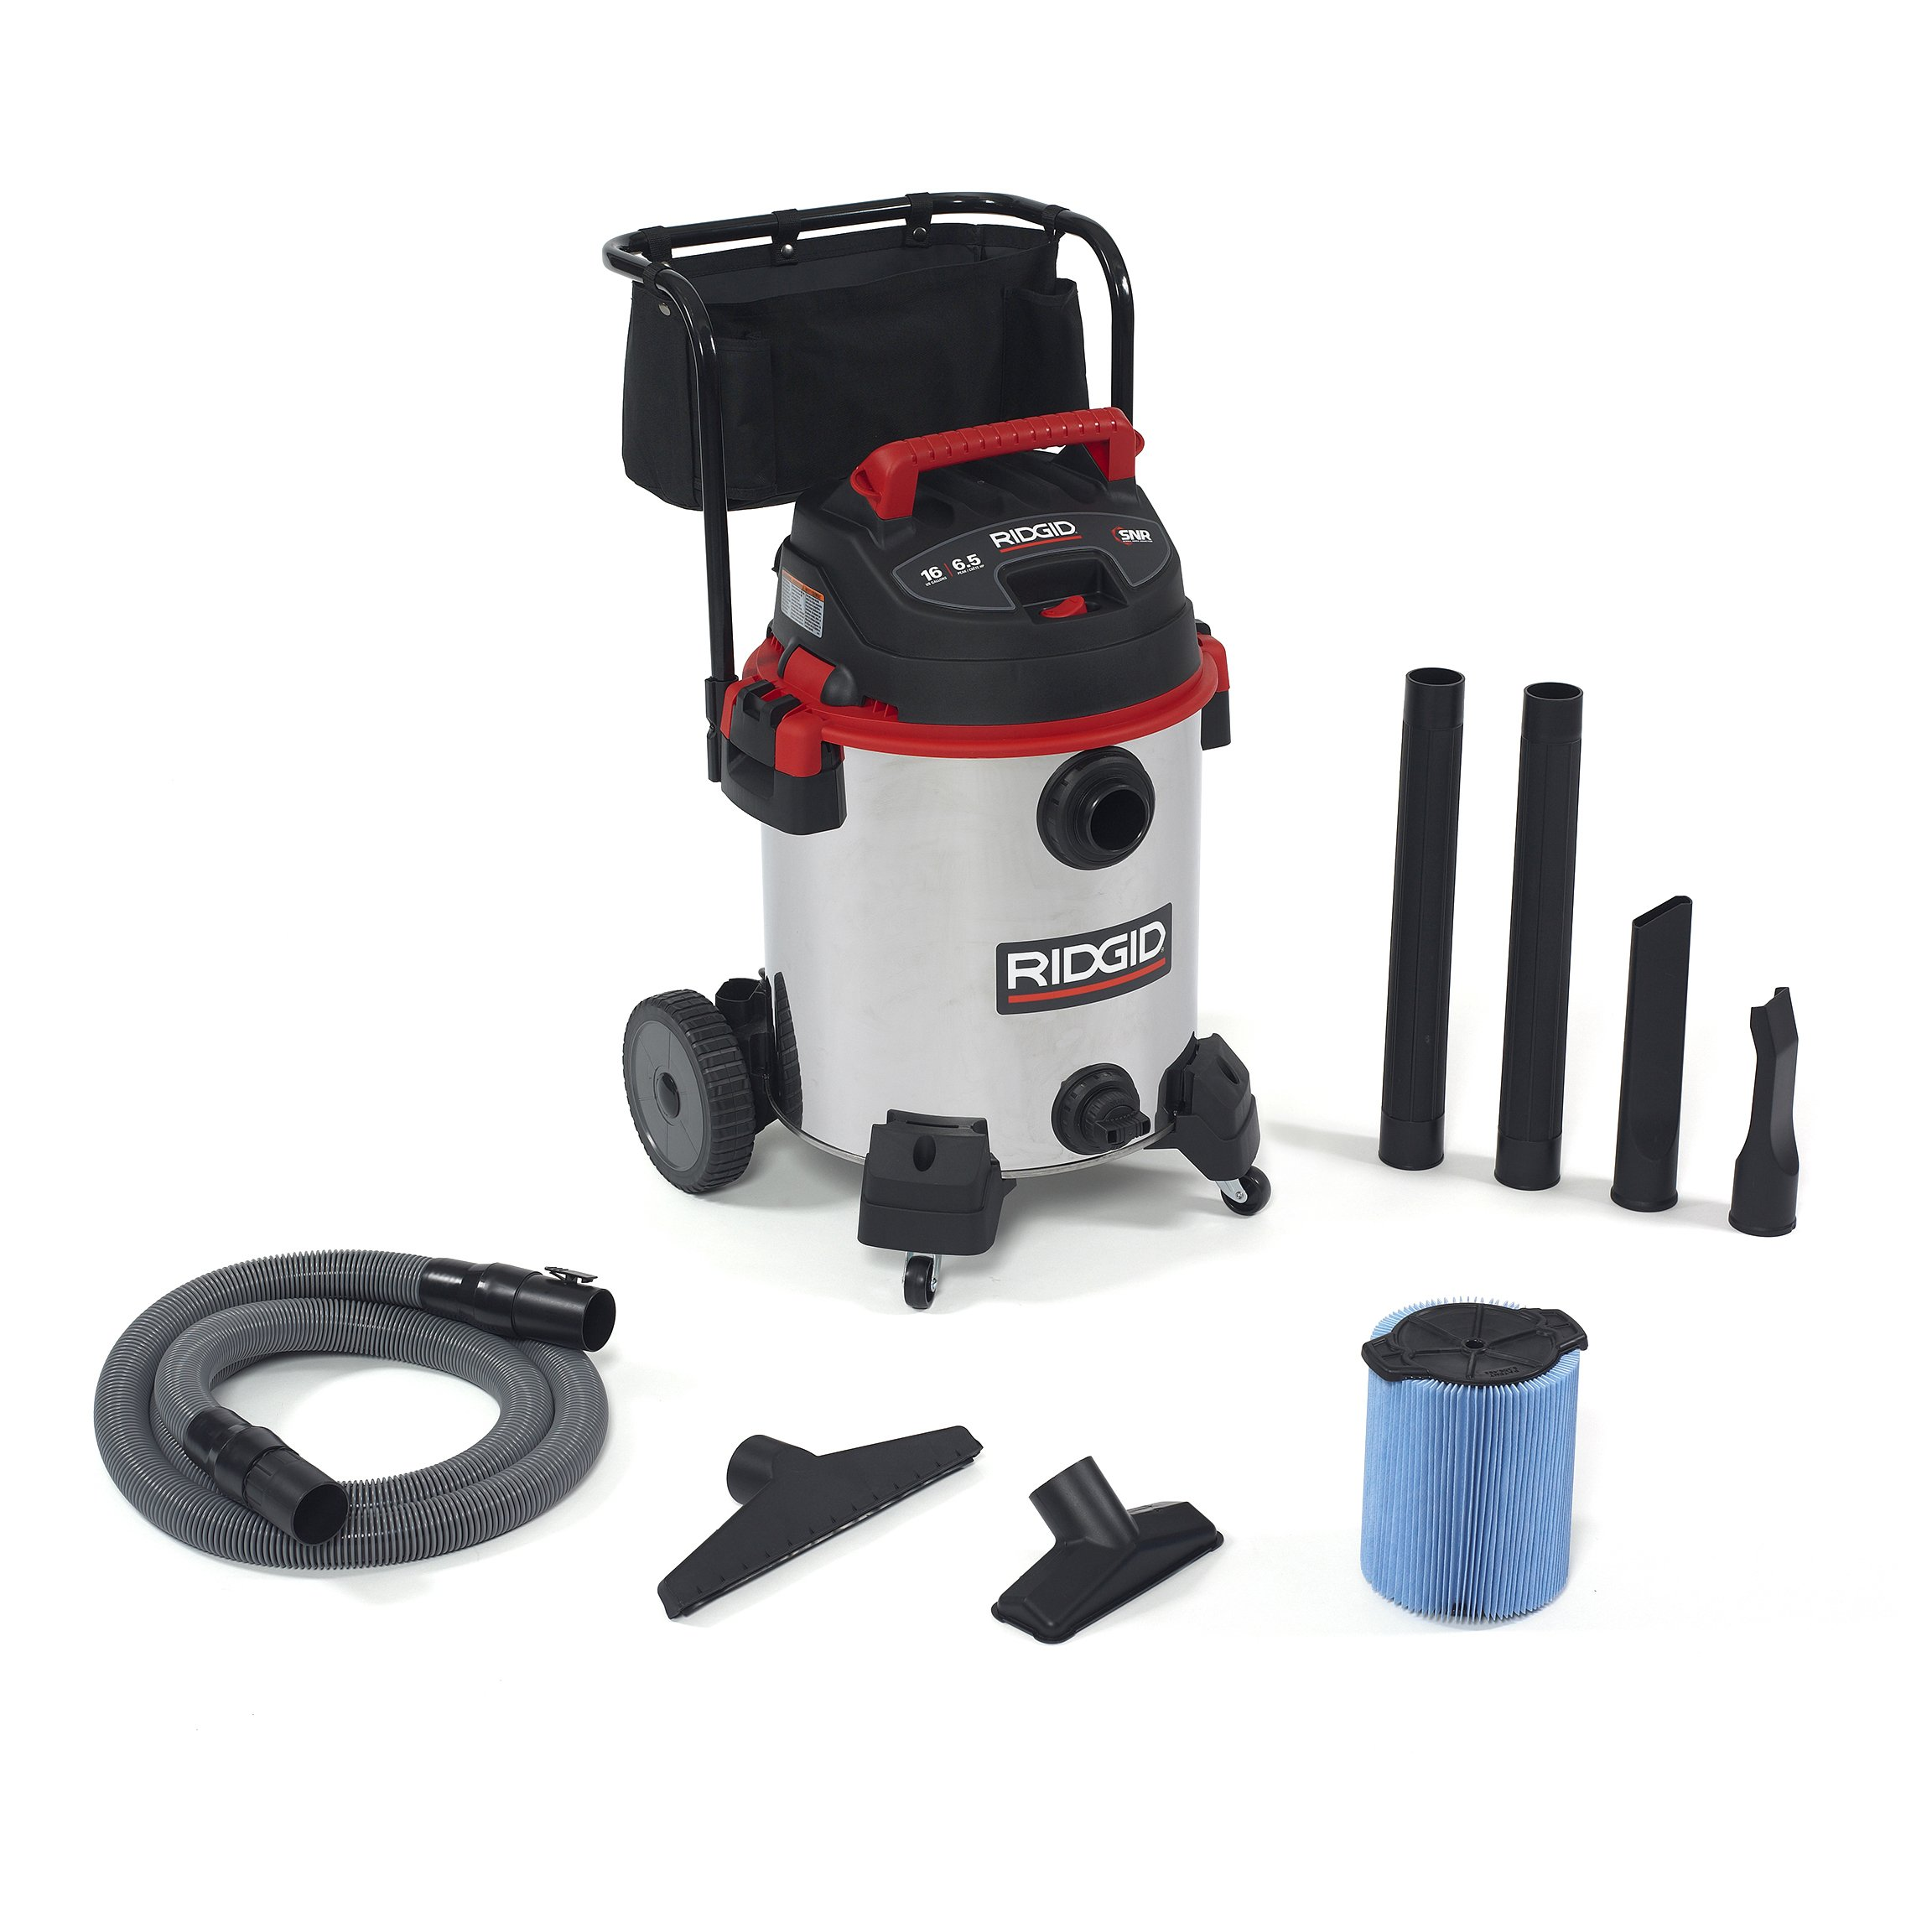 RIDGID 50353 1610RV Stainless Steel Wet Dry Vacuum, 16-Gallon Shop Vacuum with Cart, 6.5 Peak HP Motor, Large Wheels, Pro Hose, Drain, Blower Port by Ridgid